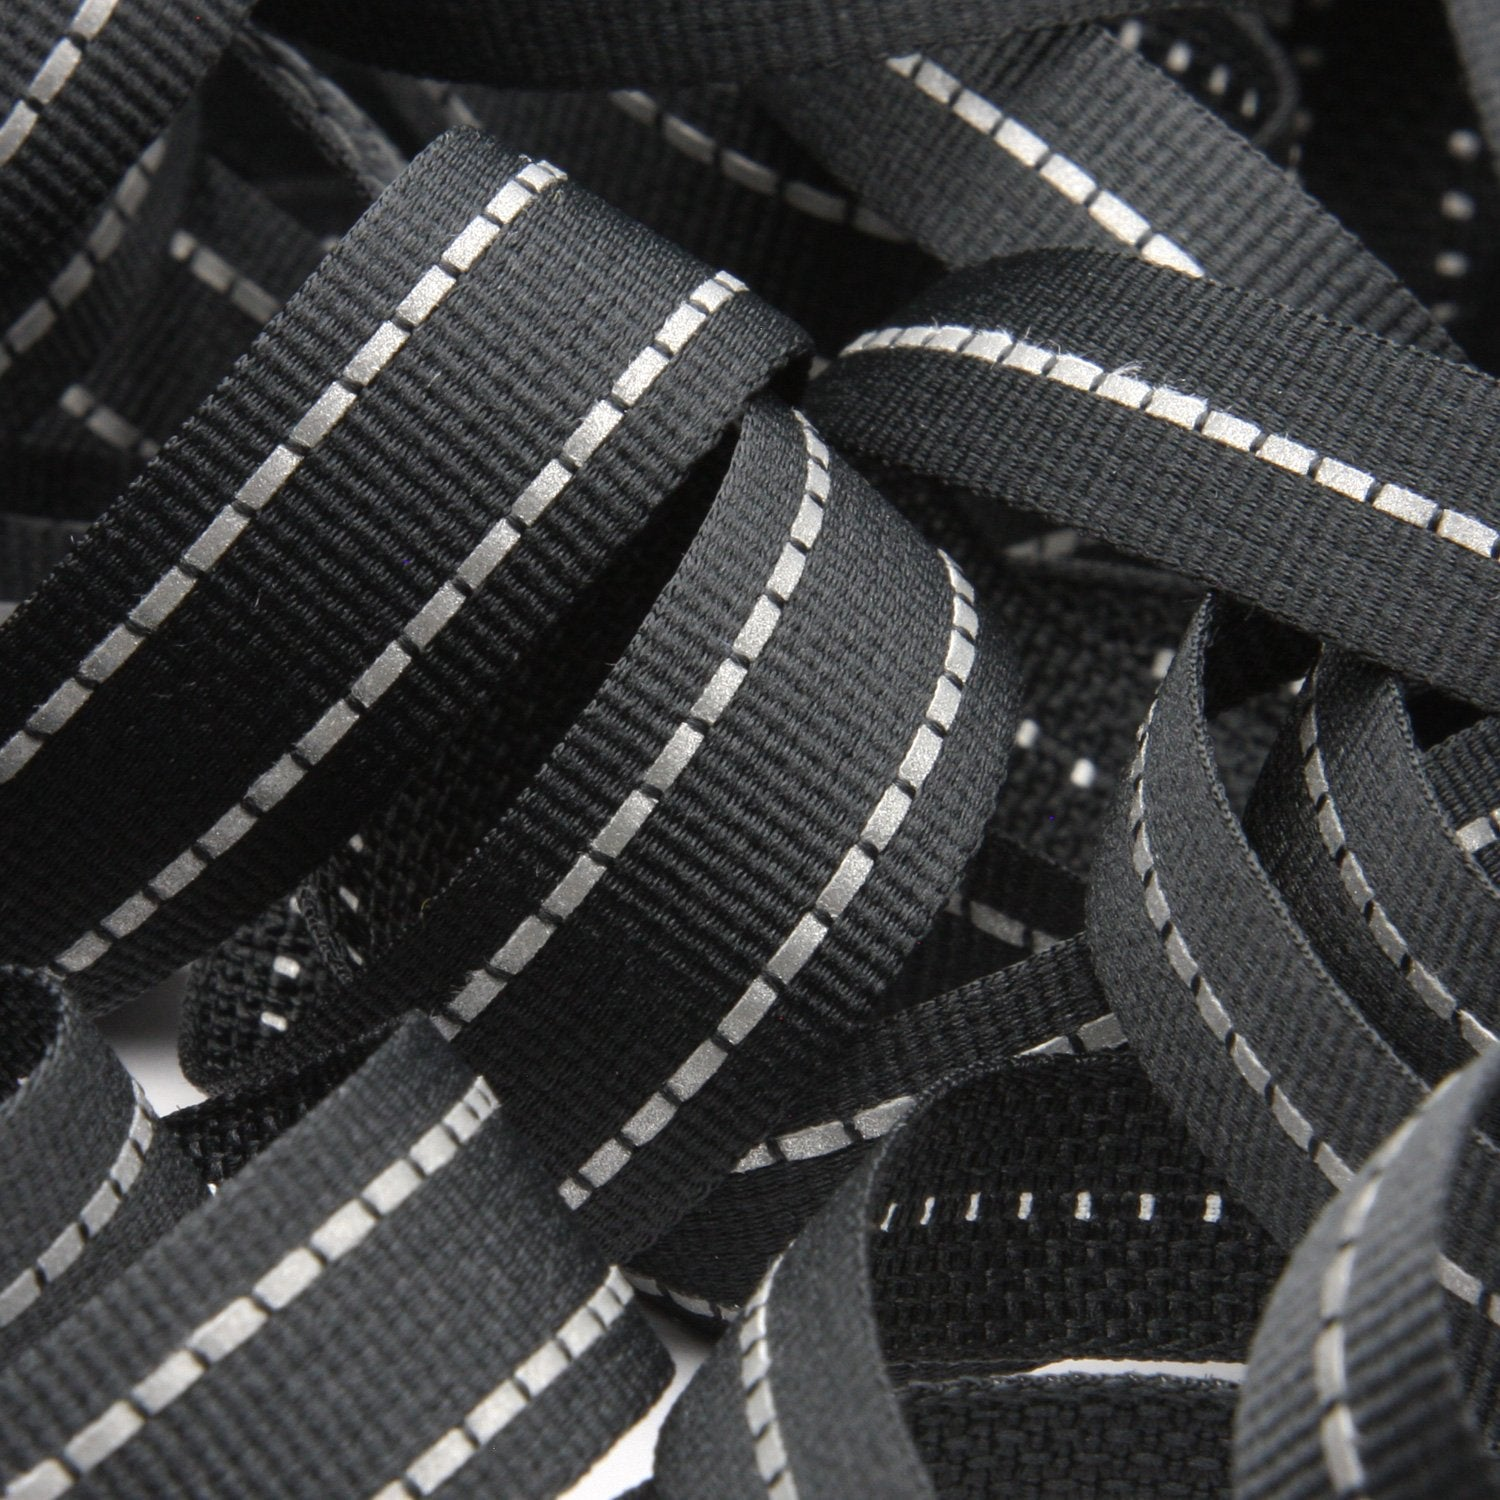 FUJIYAMA RIBBON [Wholesale] Single Stitched Reflect Weave Tape 10mm Black 30 Meters Roll